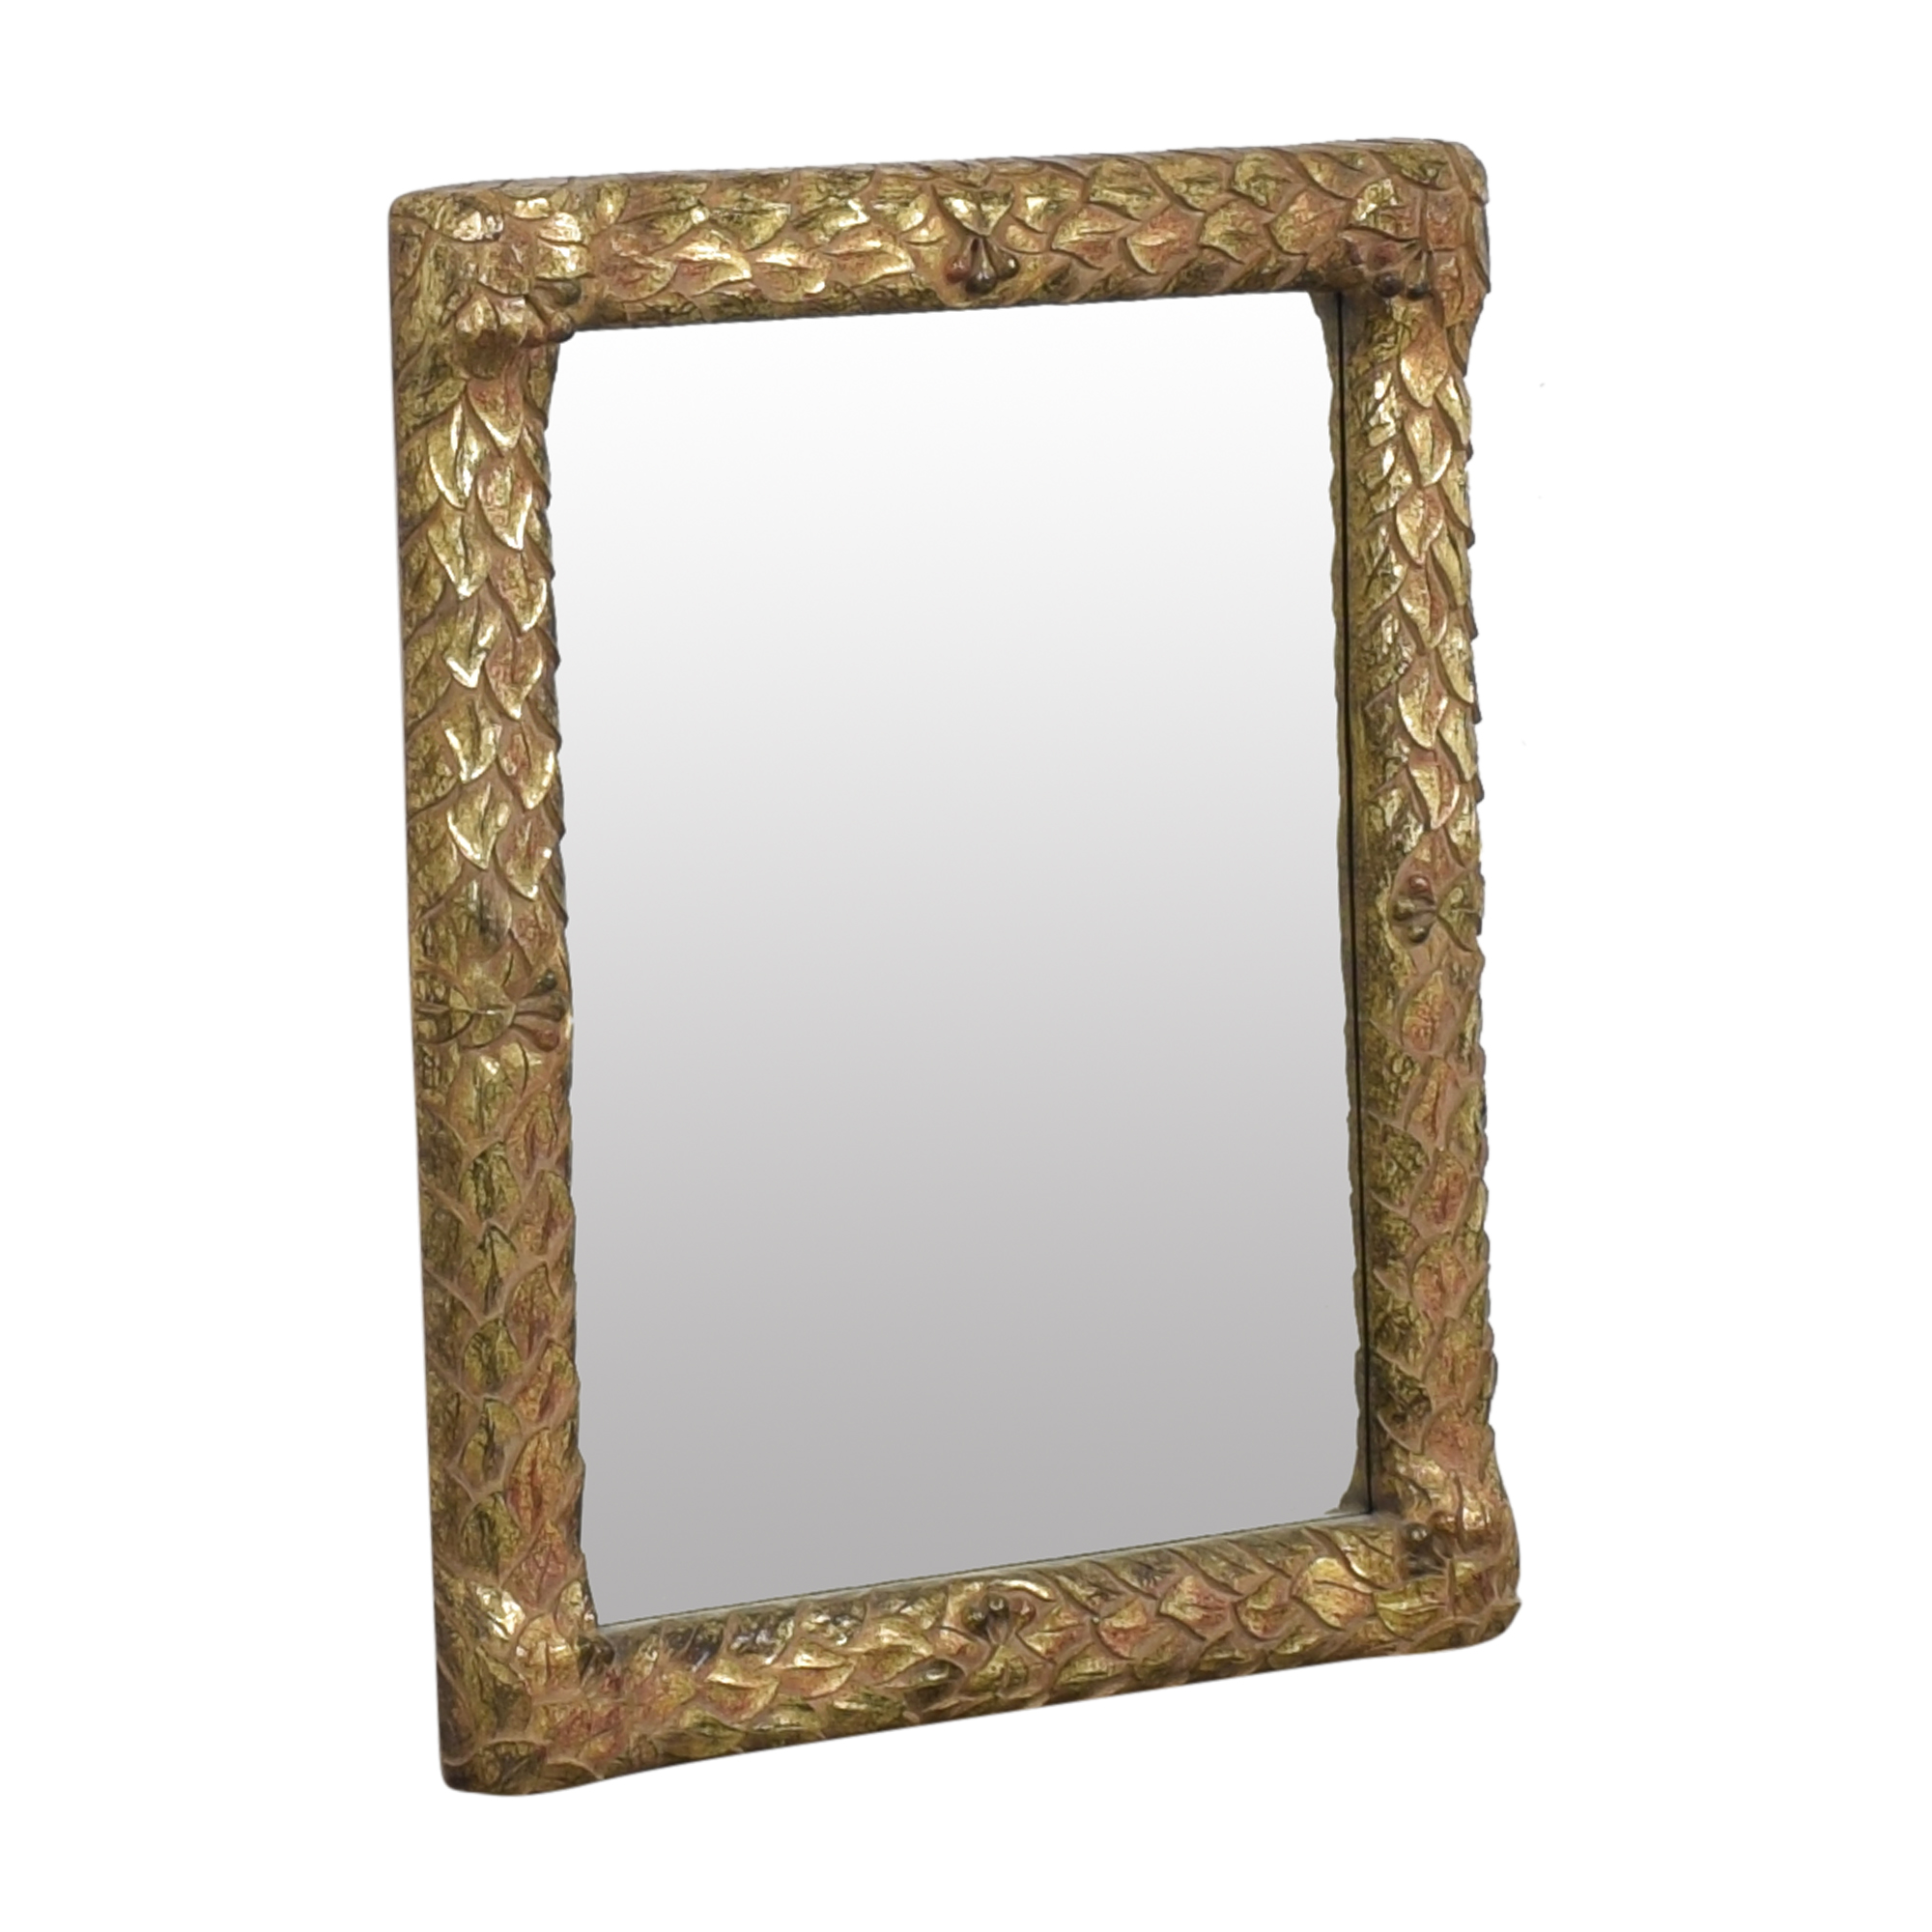 Wall Mirror with Carved Frame / Mirrors